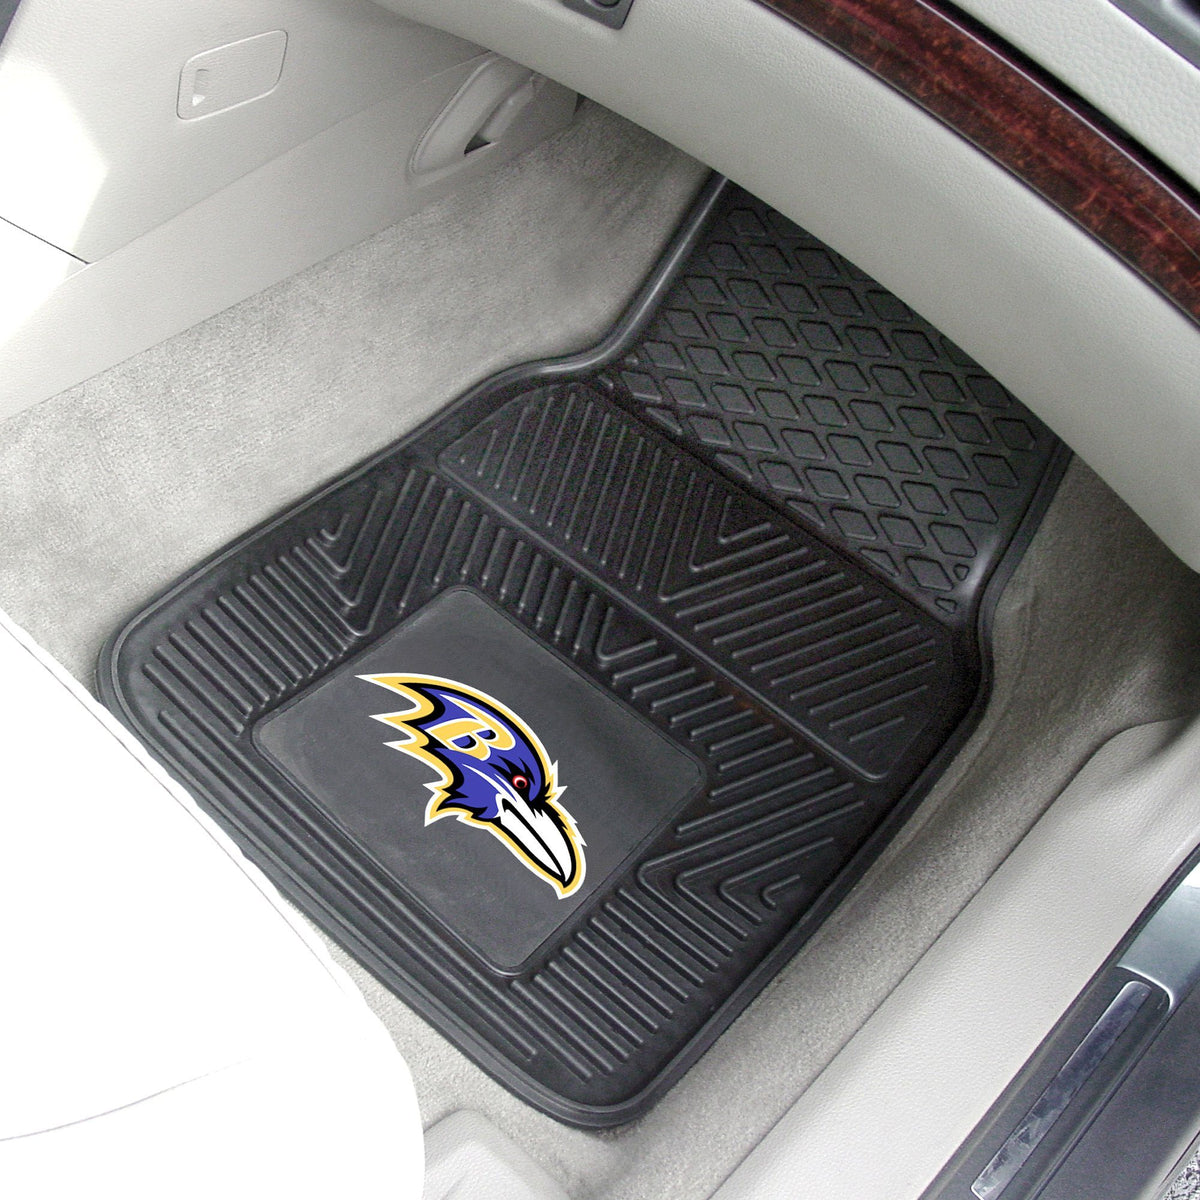 NFL - 2-pc Vinyl Car Mat Set NFL Mats, Front Car Mats, 2-pc Vinyl Car Mat Set, NFL, Auto Fan Mats Baltimore Ravens